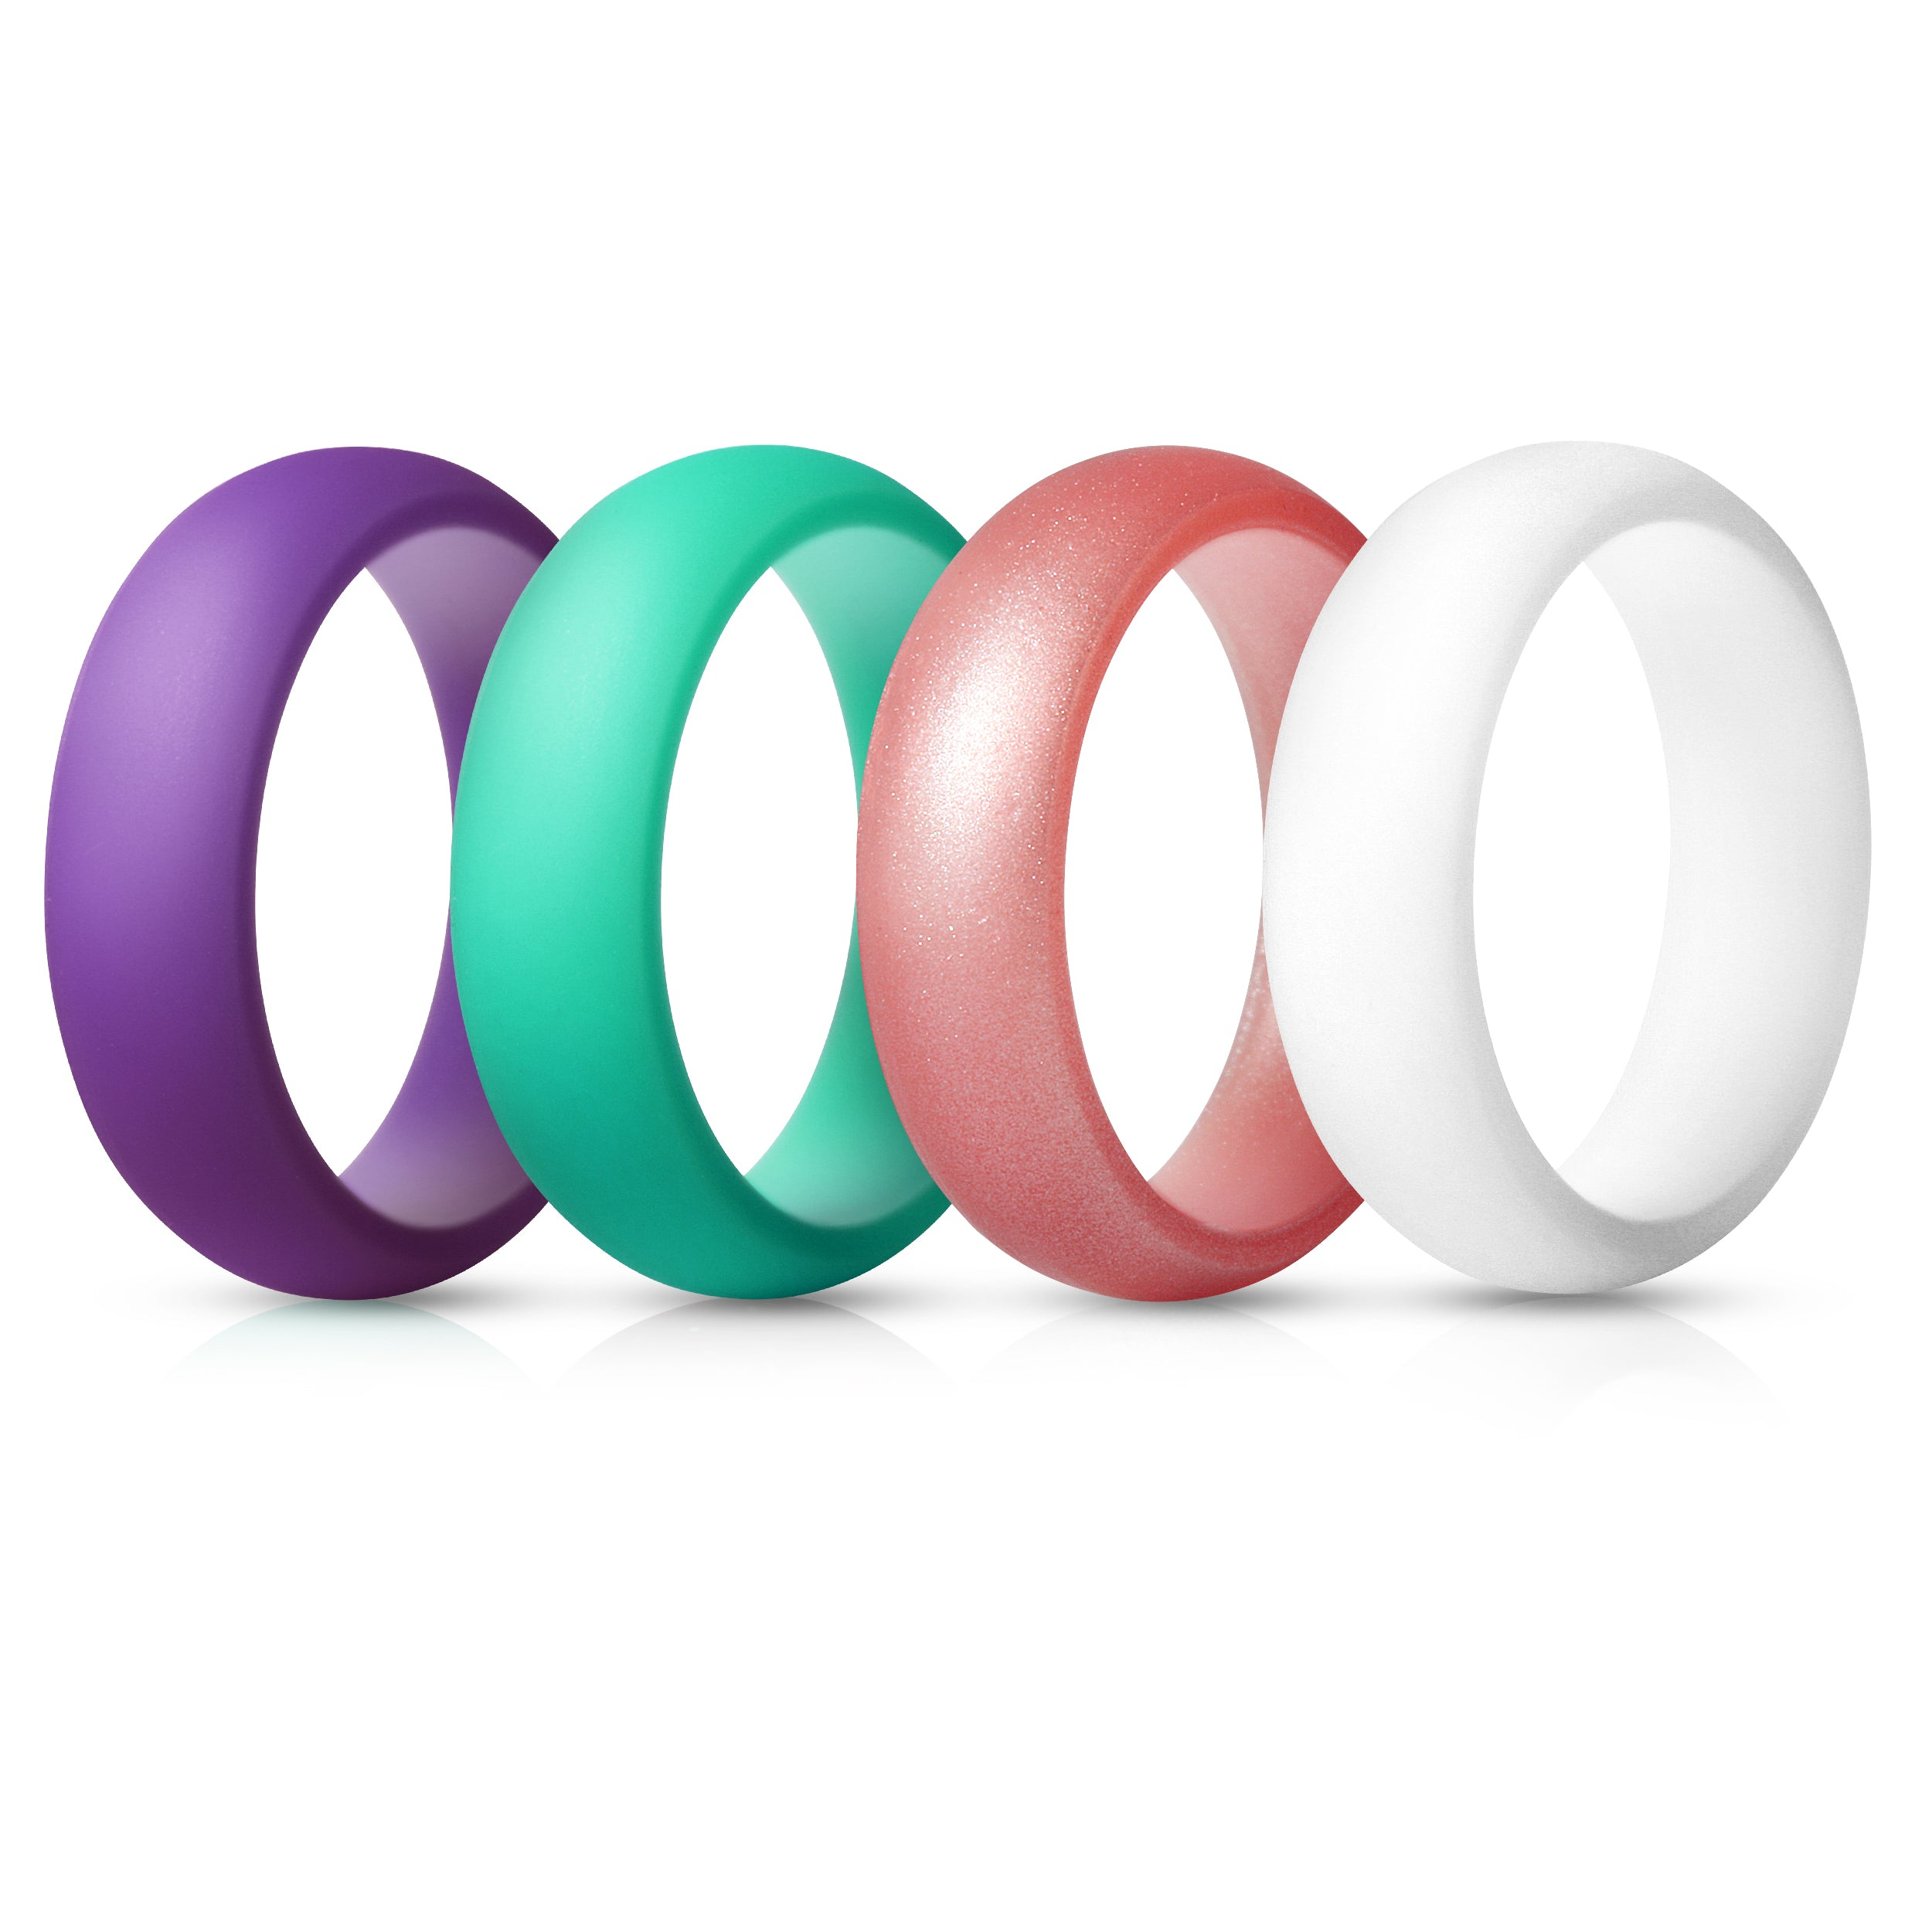 Women's Rings 4 Pack - Teal, White, Purple, Metallic Pink